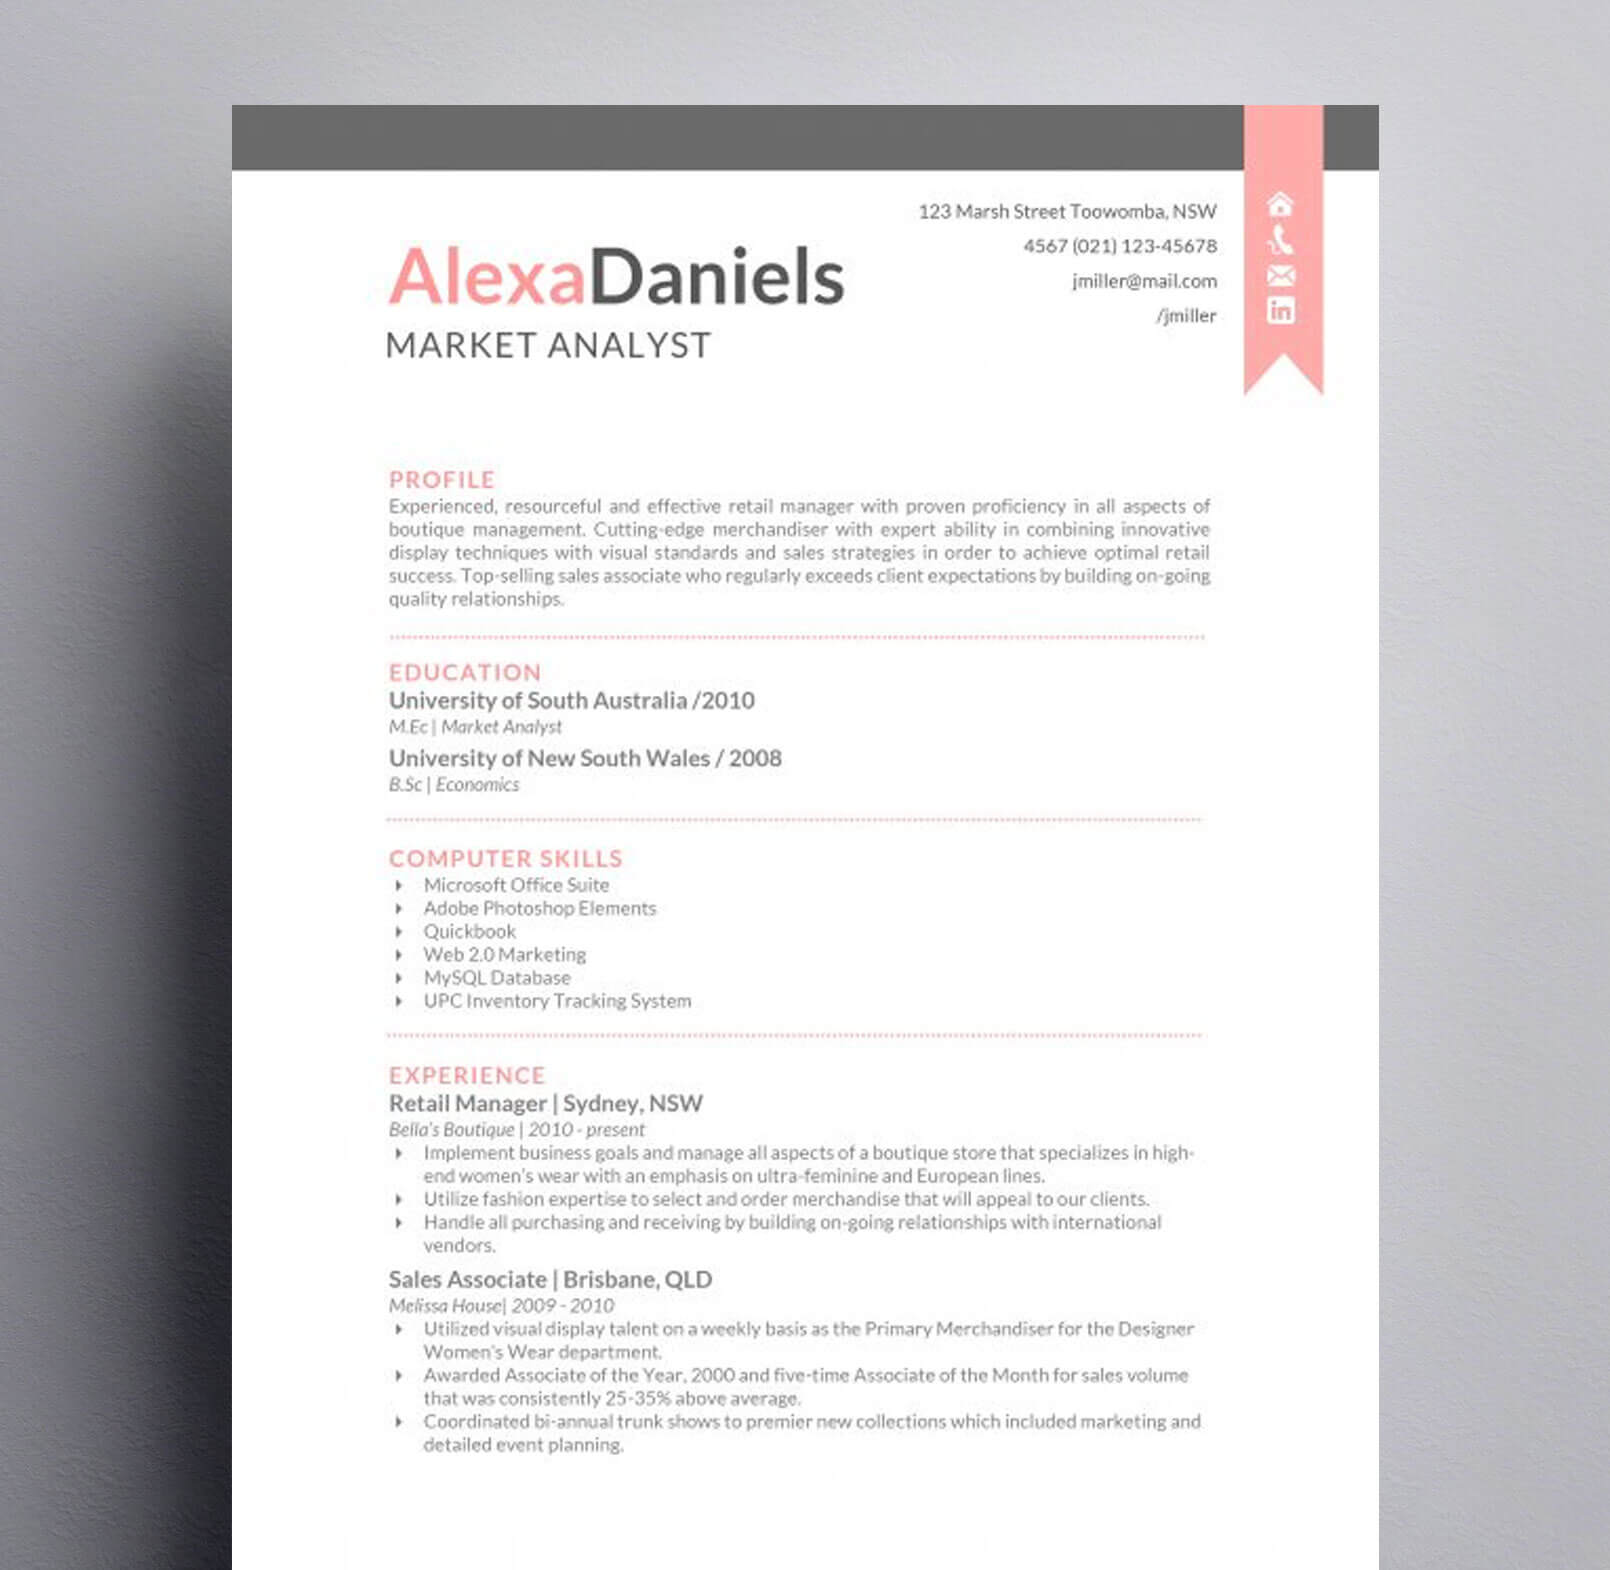 The Alexa Daniels Resume : Kukook